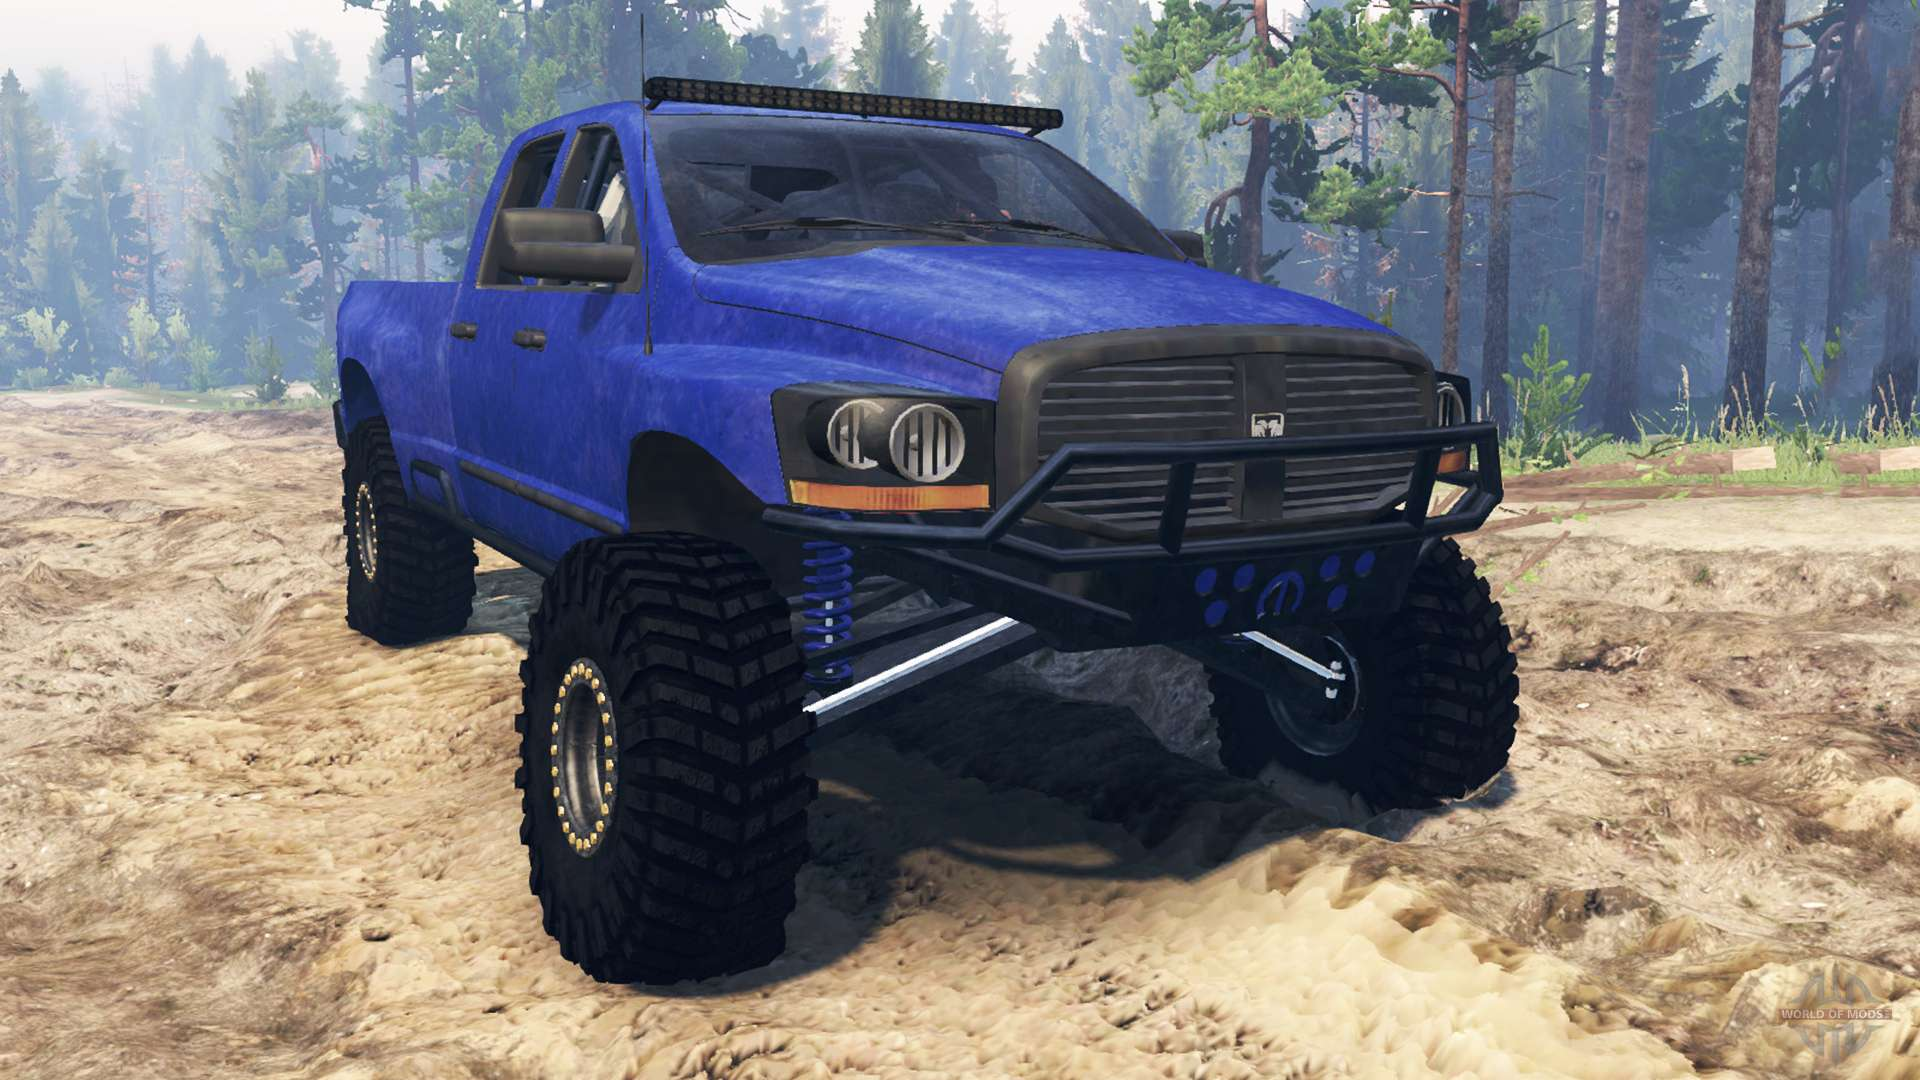 Spintires on 96 Dodge Ram 1500